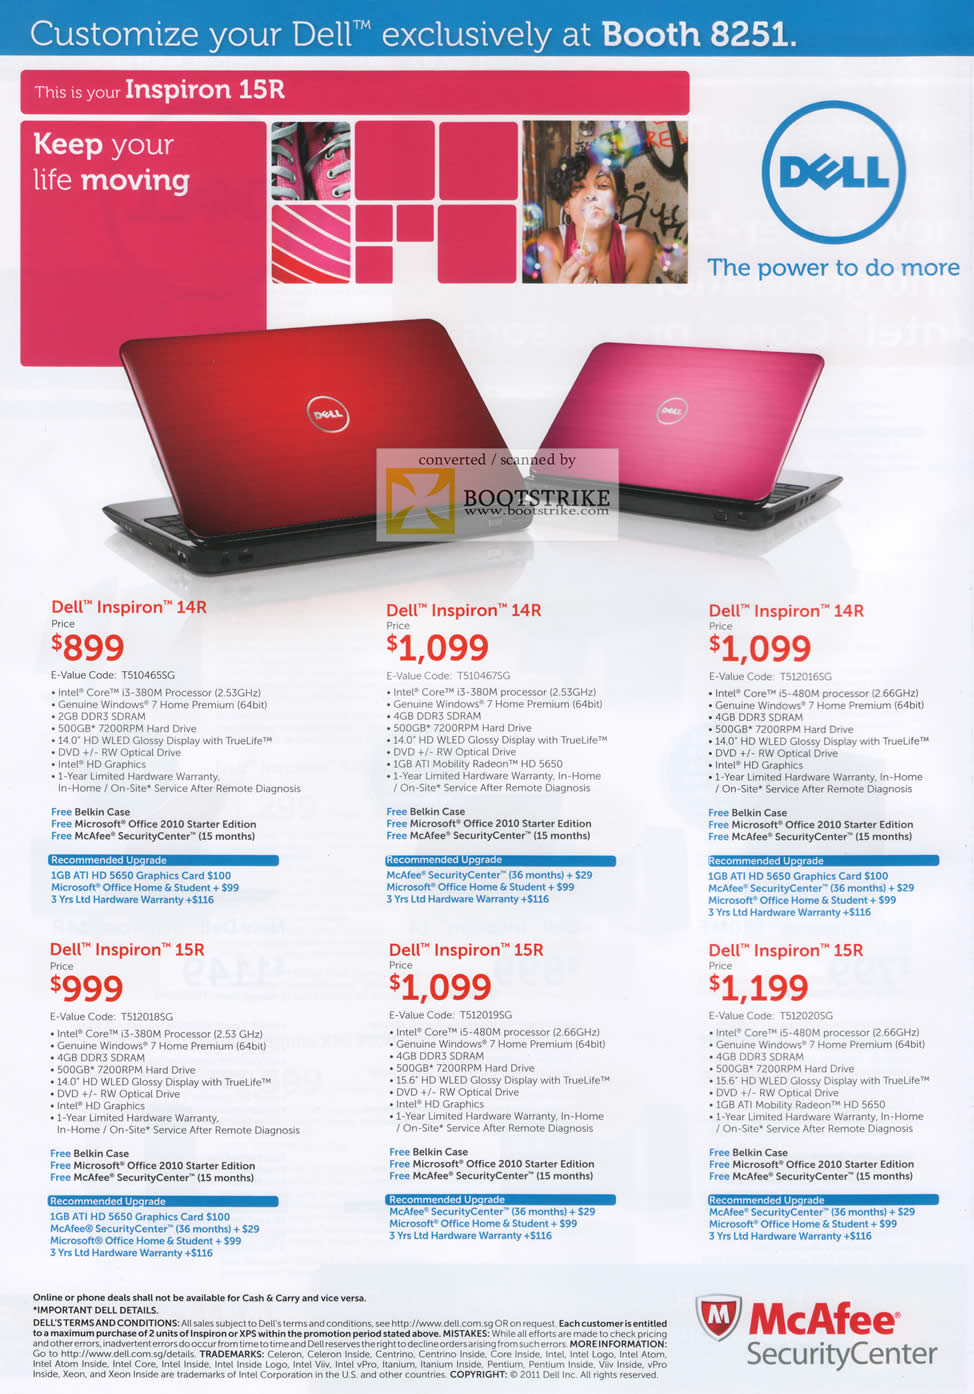 IT Show 2011 price list image brochure of Dell Notebooks Inspiron 14R 15R